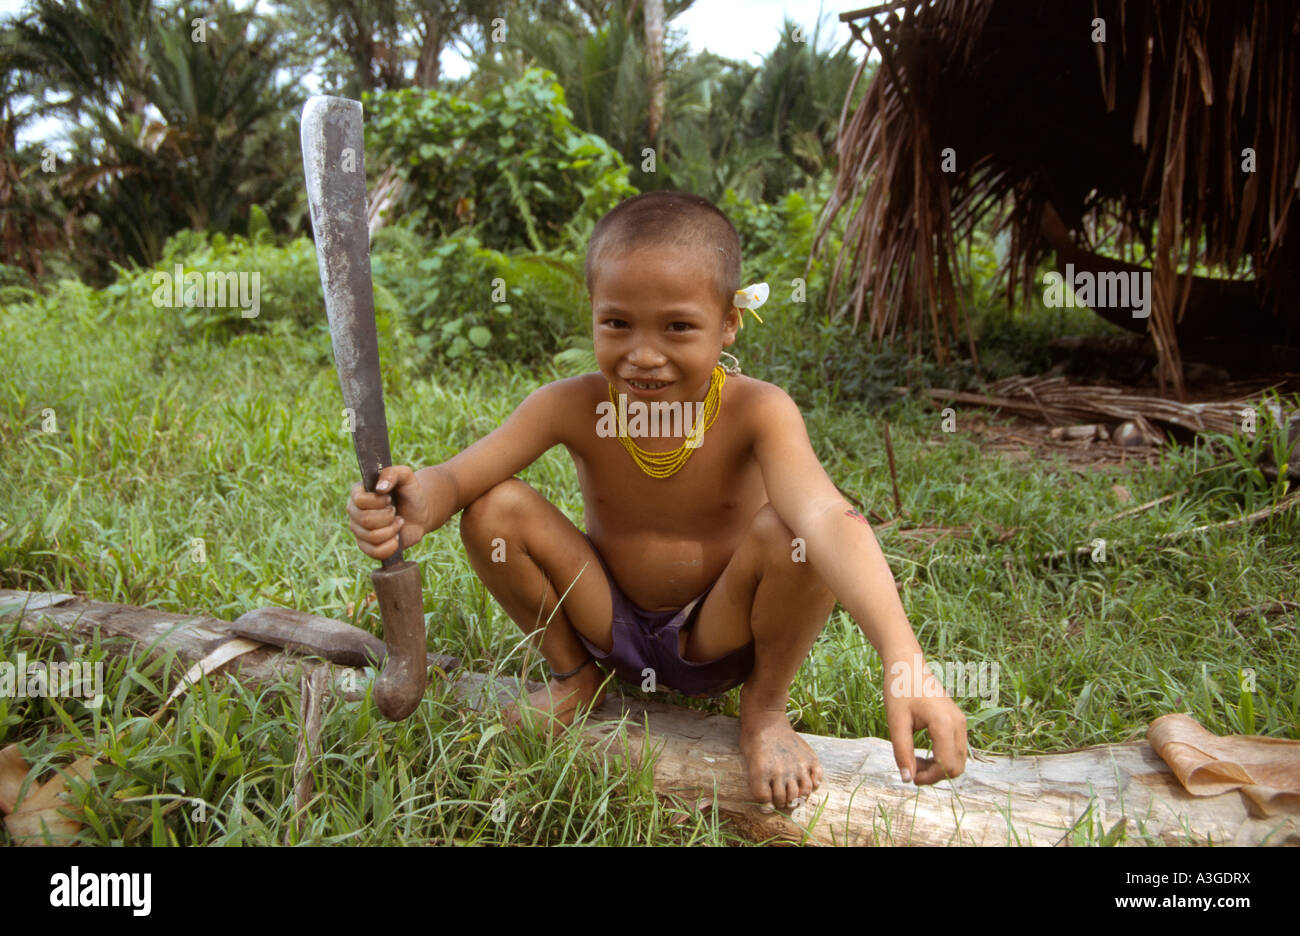 A Mentawai boy with a large machete in the Government Village. Siberut Island, Sumatra, Indonesia - Stock Image